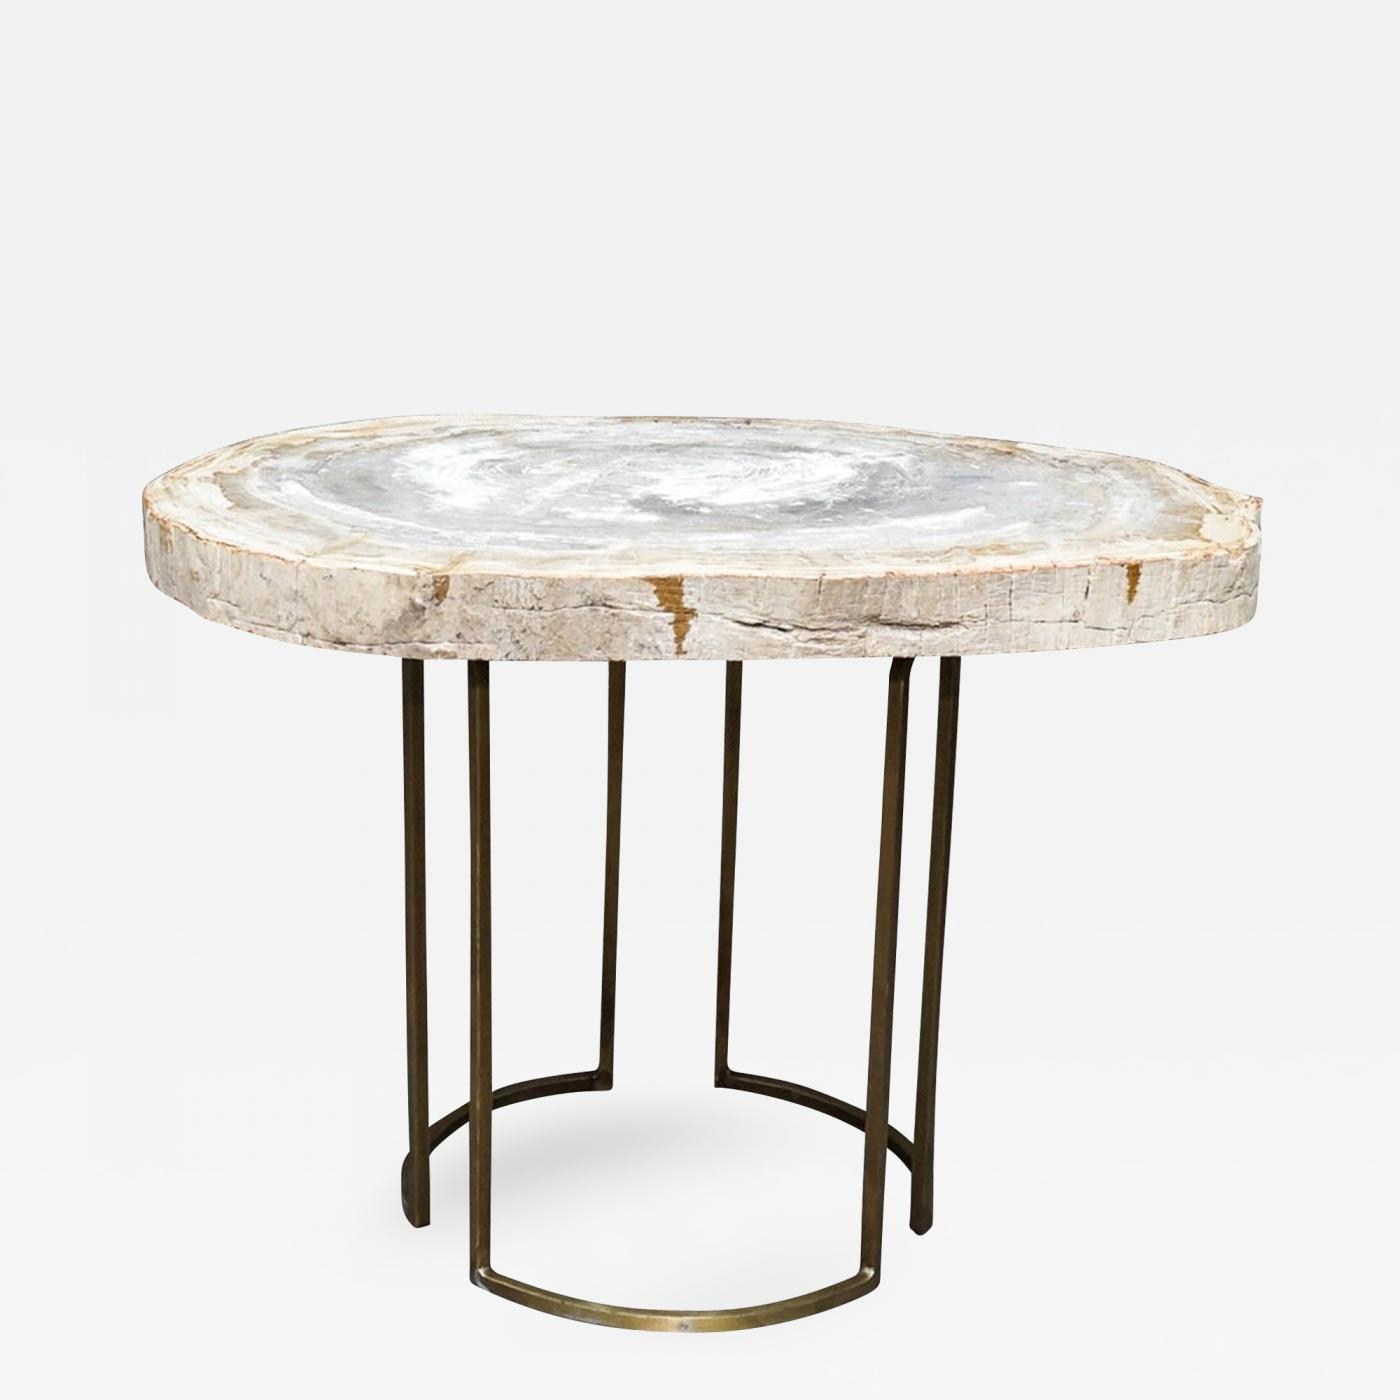 custom petrified wood slab accent table with brass base listings furniture tables side pier one step quilted runners and placemats white brown telephone tiffany butterfly lamp